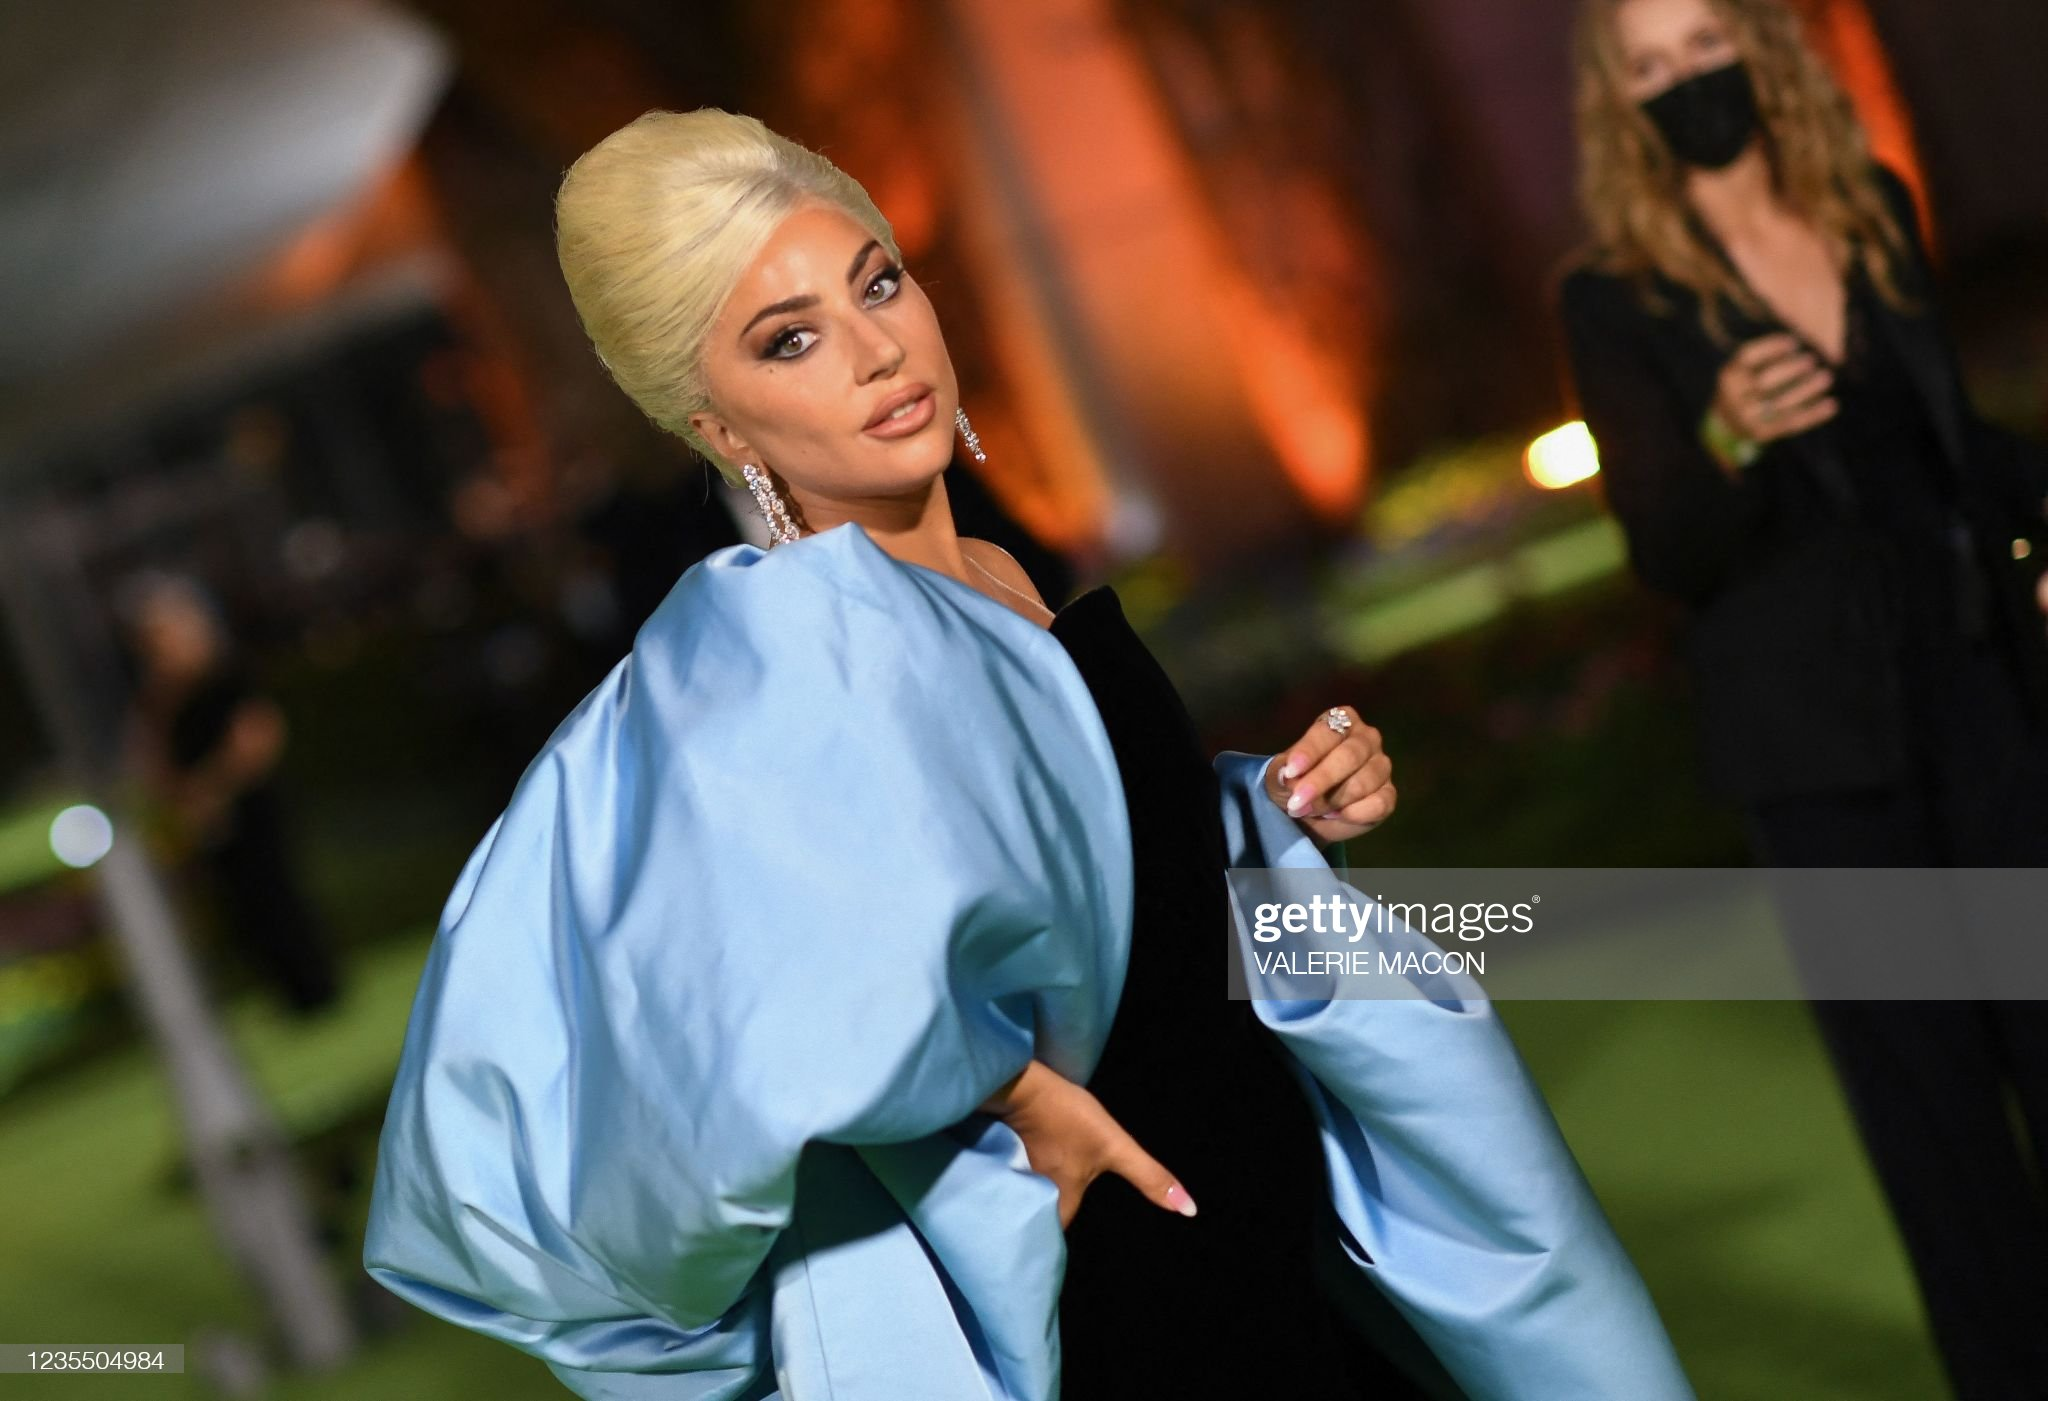 singersongwriter-lady-gaga-arrives-for-the-academy-museum-of-motion-picture-id1235504984?s=2048x2048